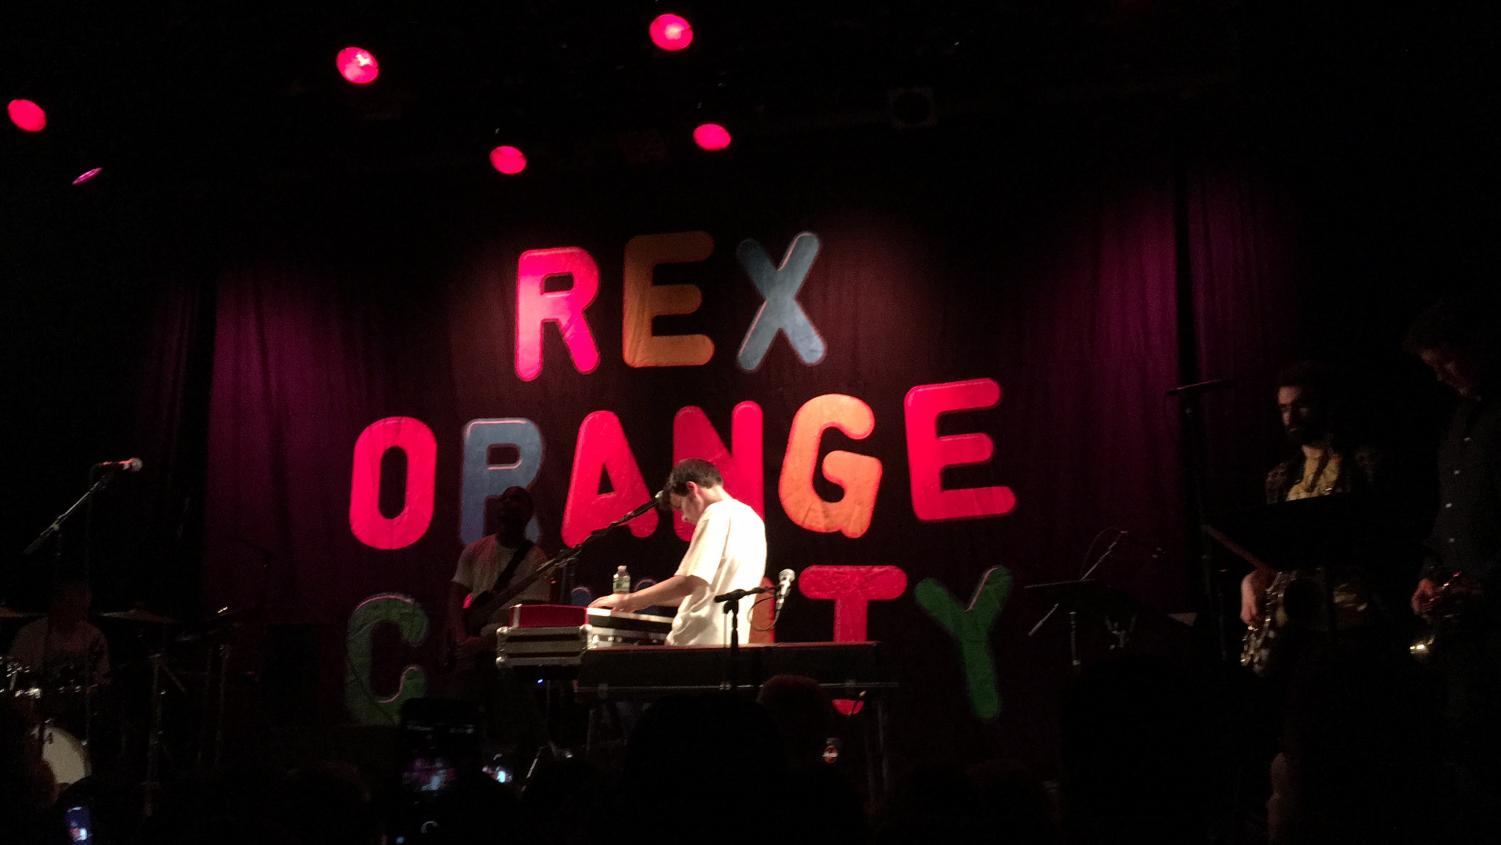 19-year-old Rex Orange County made his US debut to a sold-out show at the Music Hall of Williamsburg on Feb. 6.